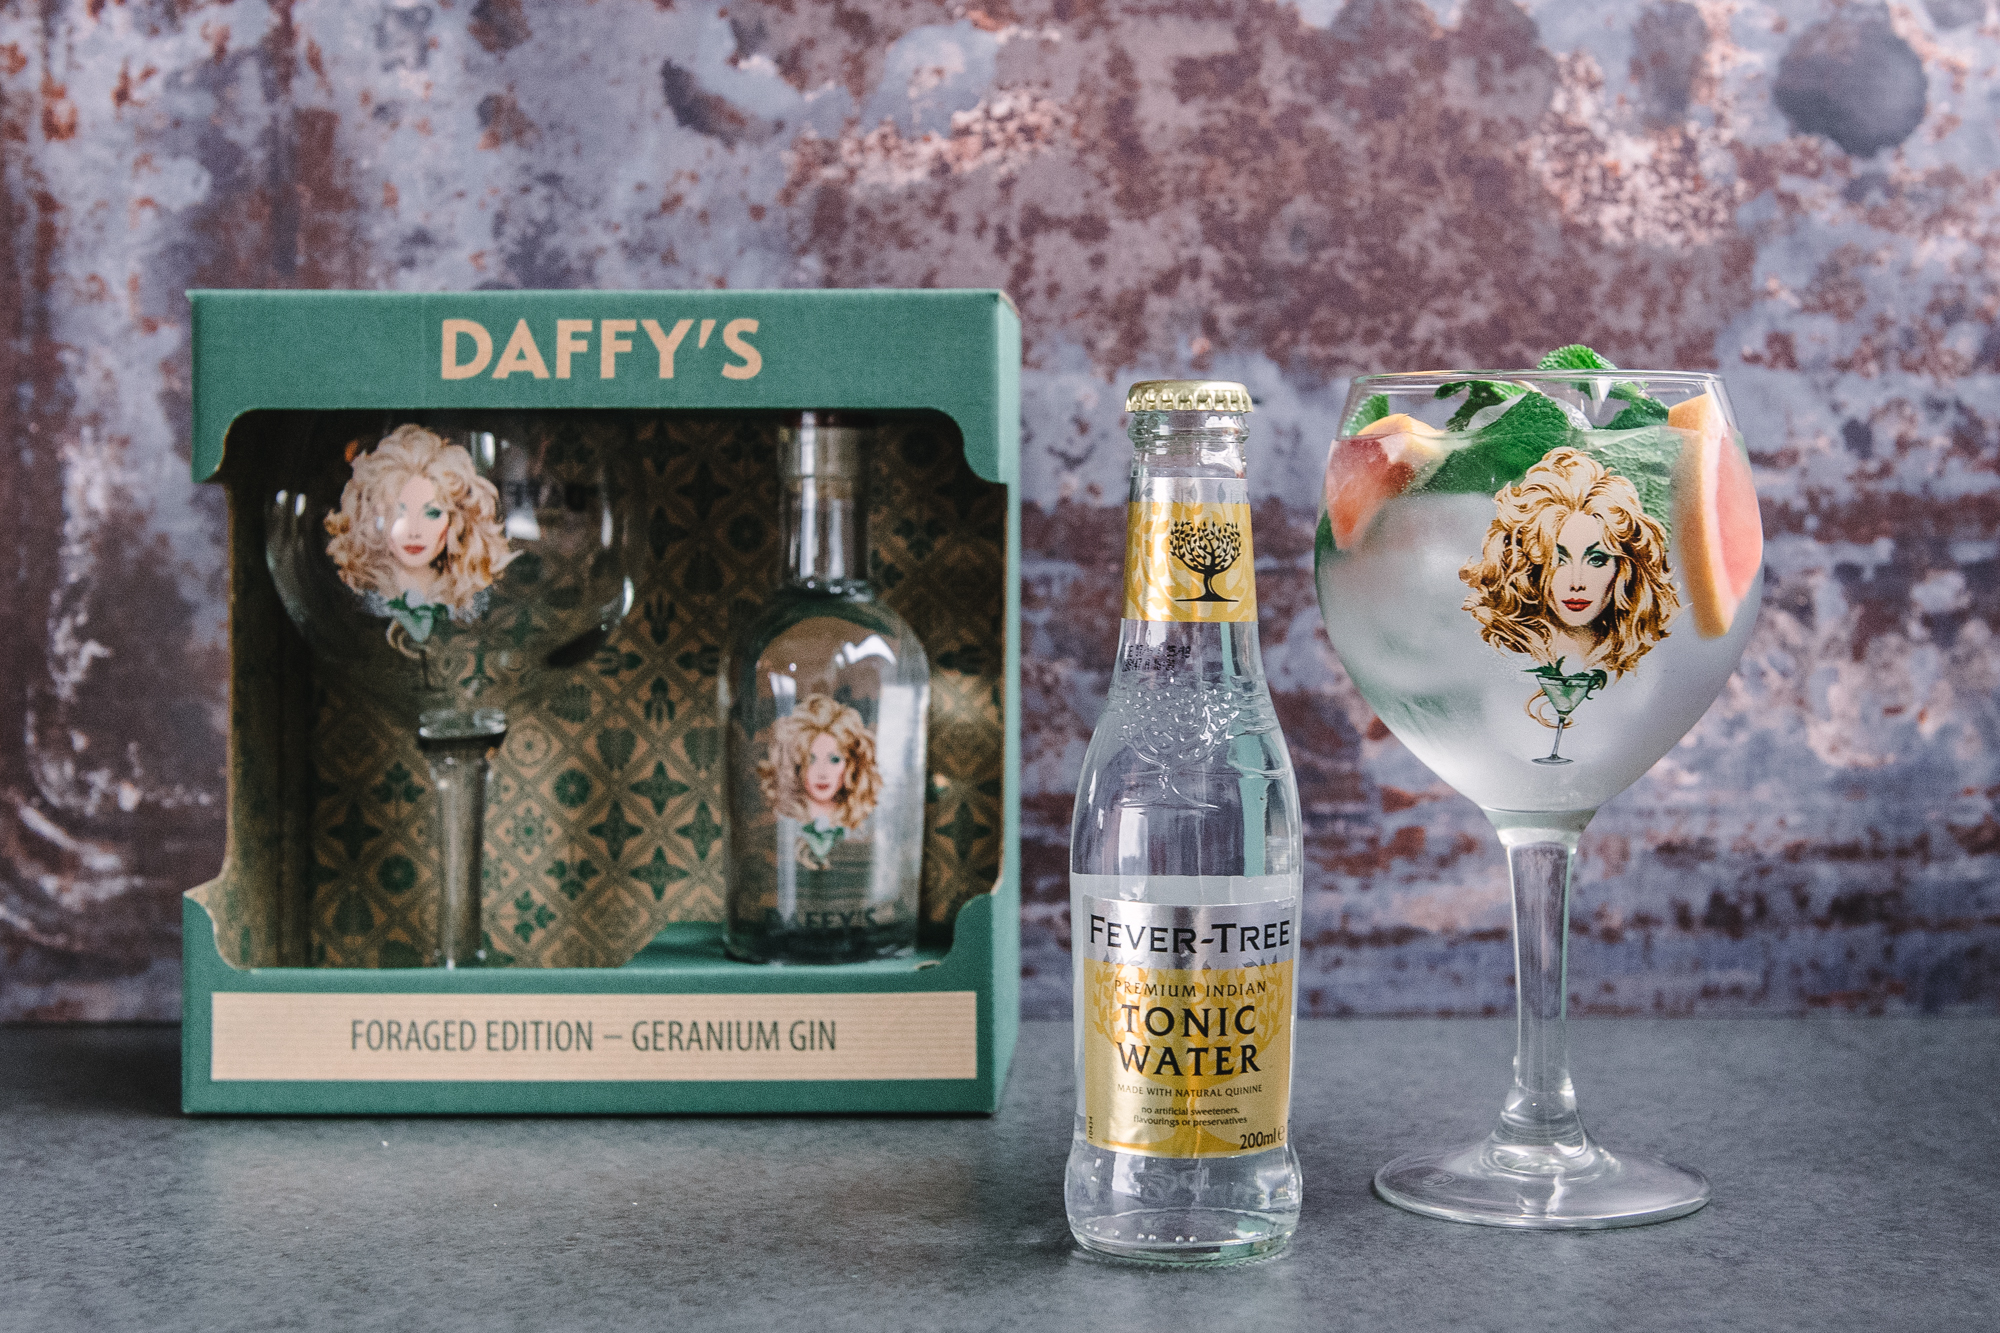 DAFFY'S X HARVEY NICHOLS FORAGED GIN